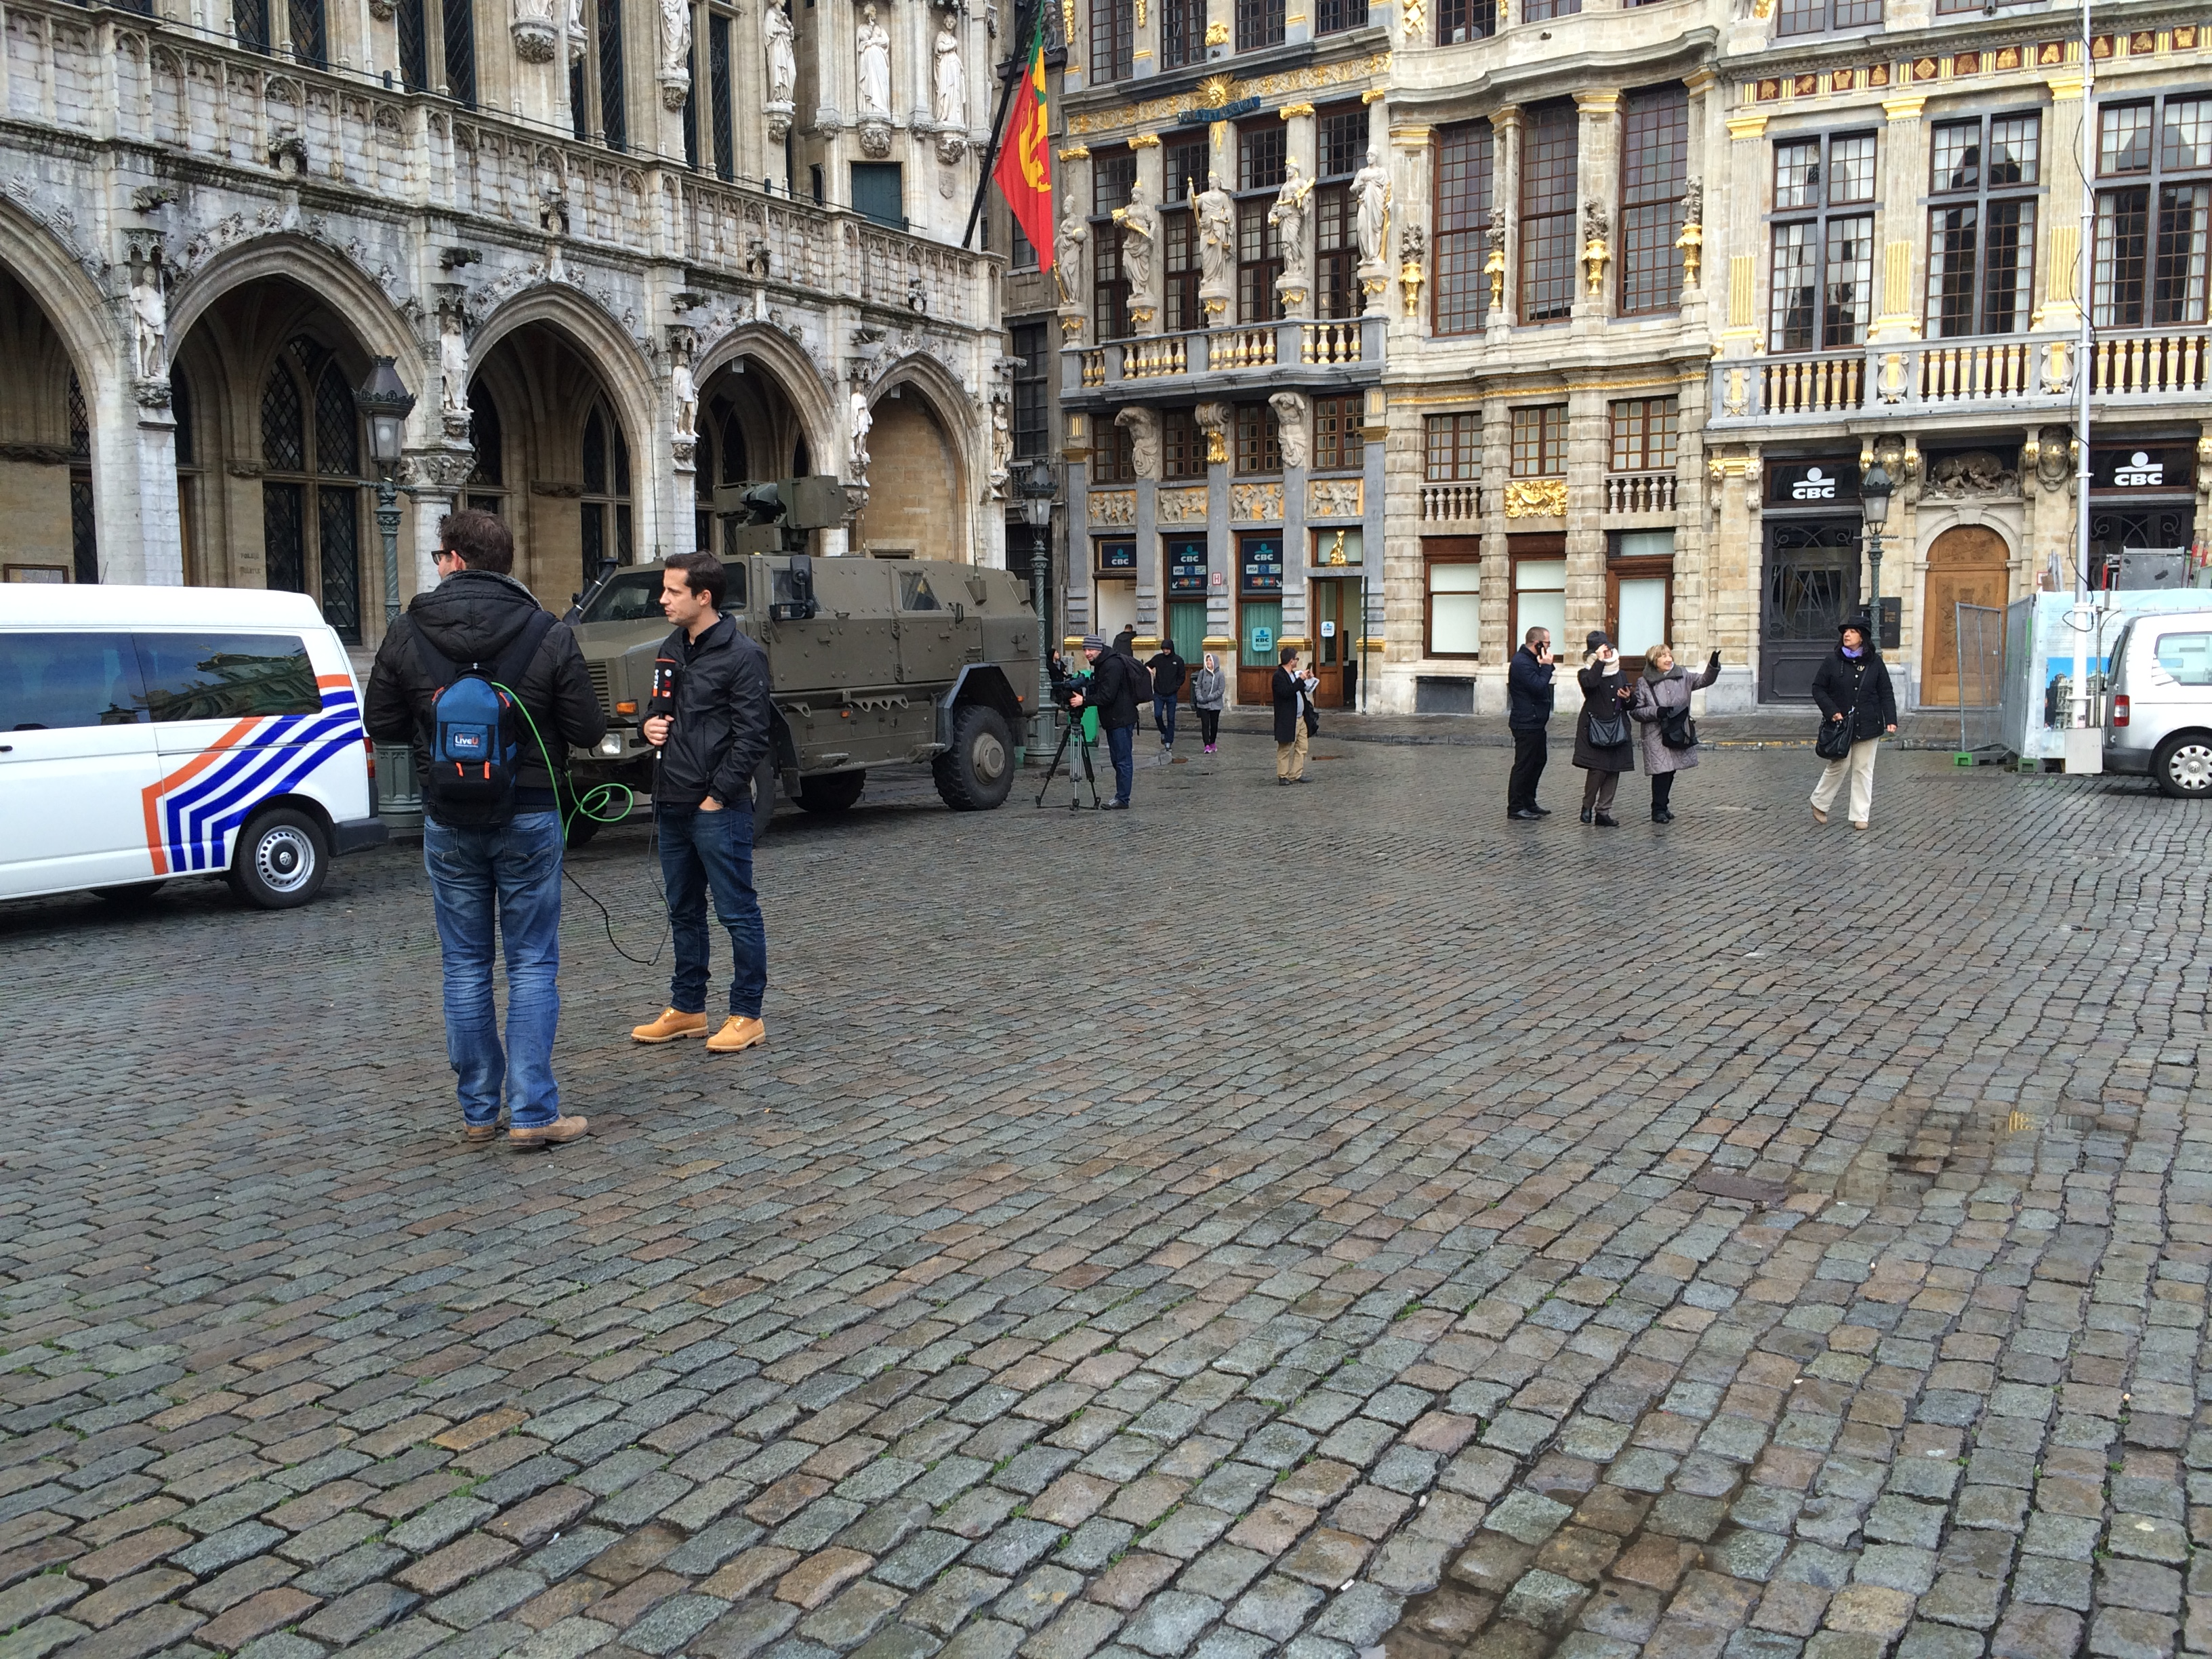 Tanks guard tourist centers in Brussels, Belgium, Nov. 22, 2015, while journalists prepare to report on an event they hope will not happen.